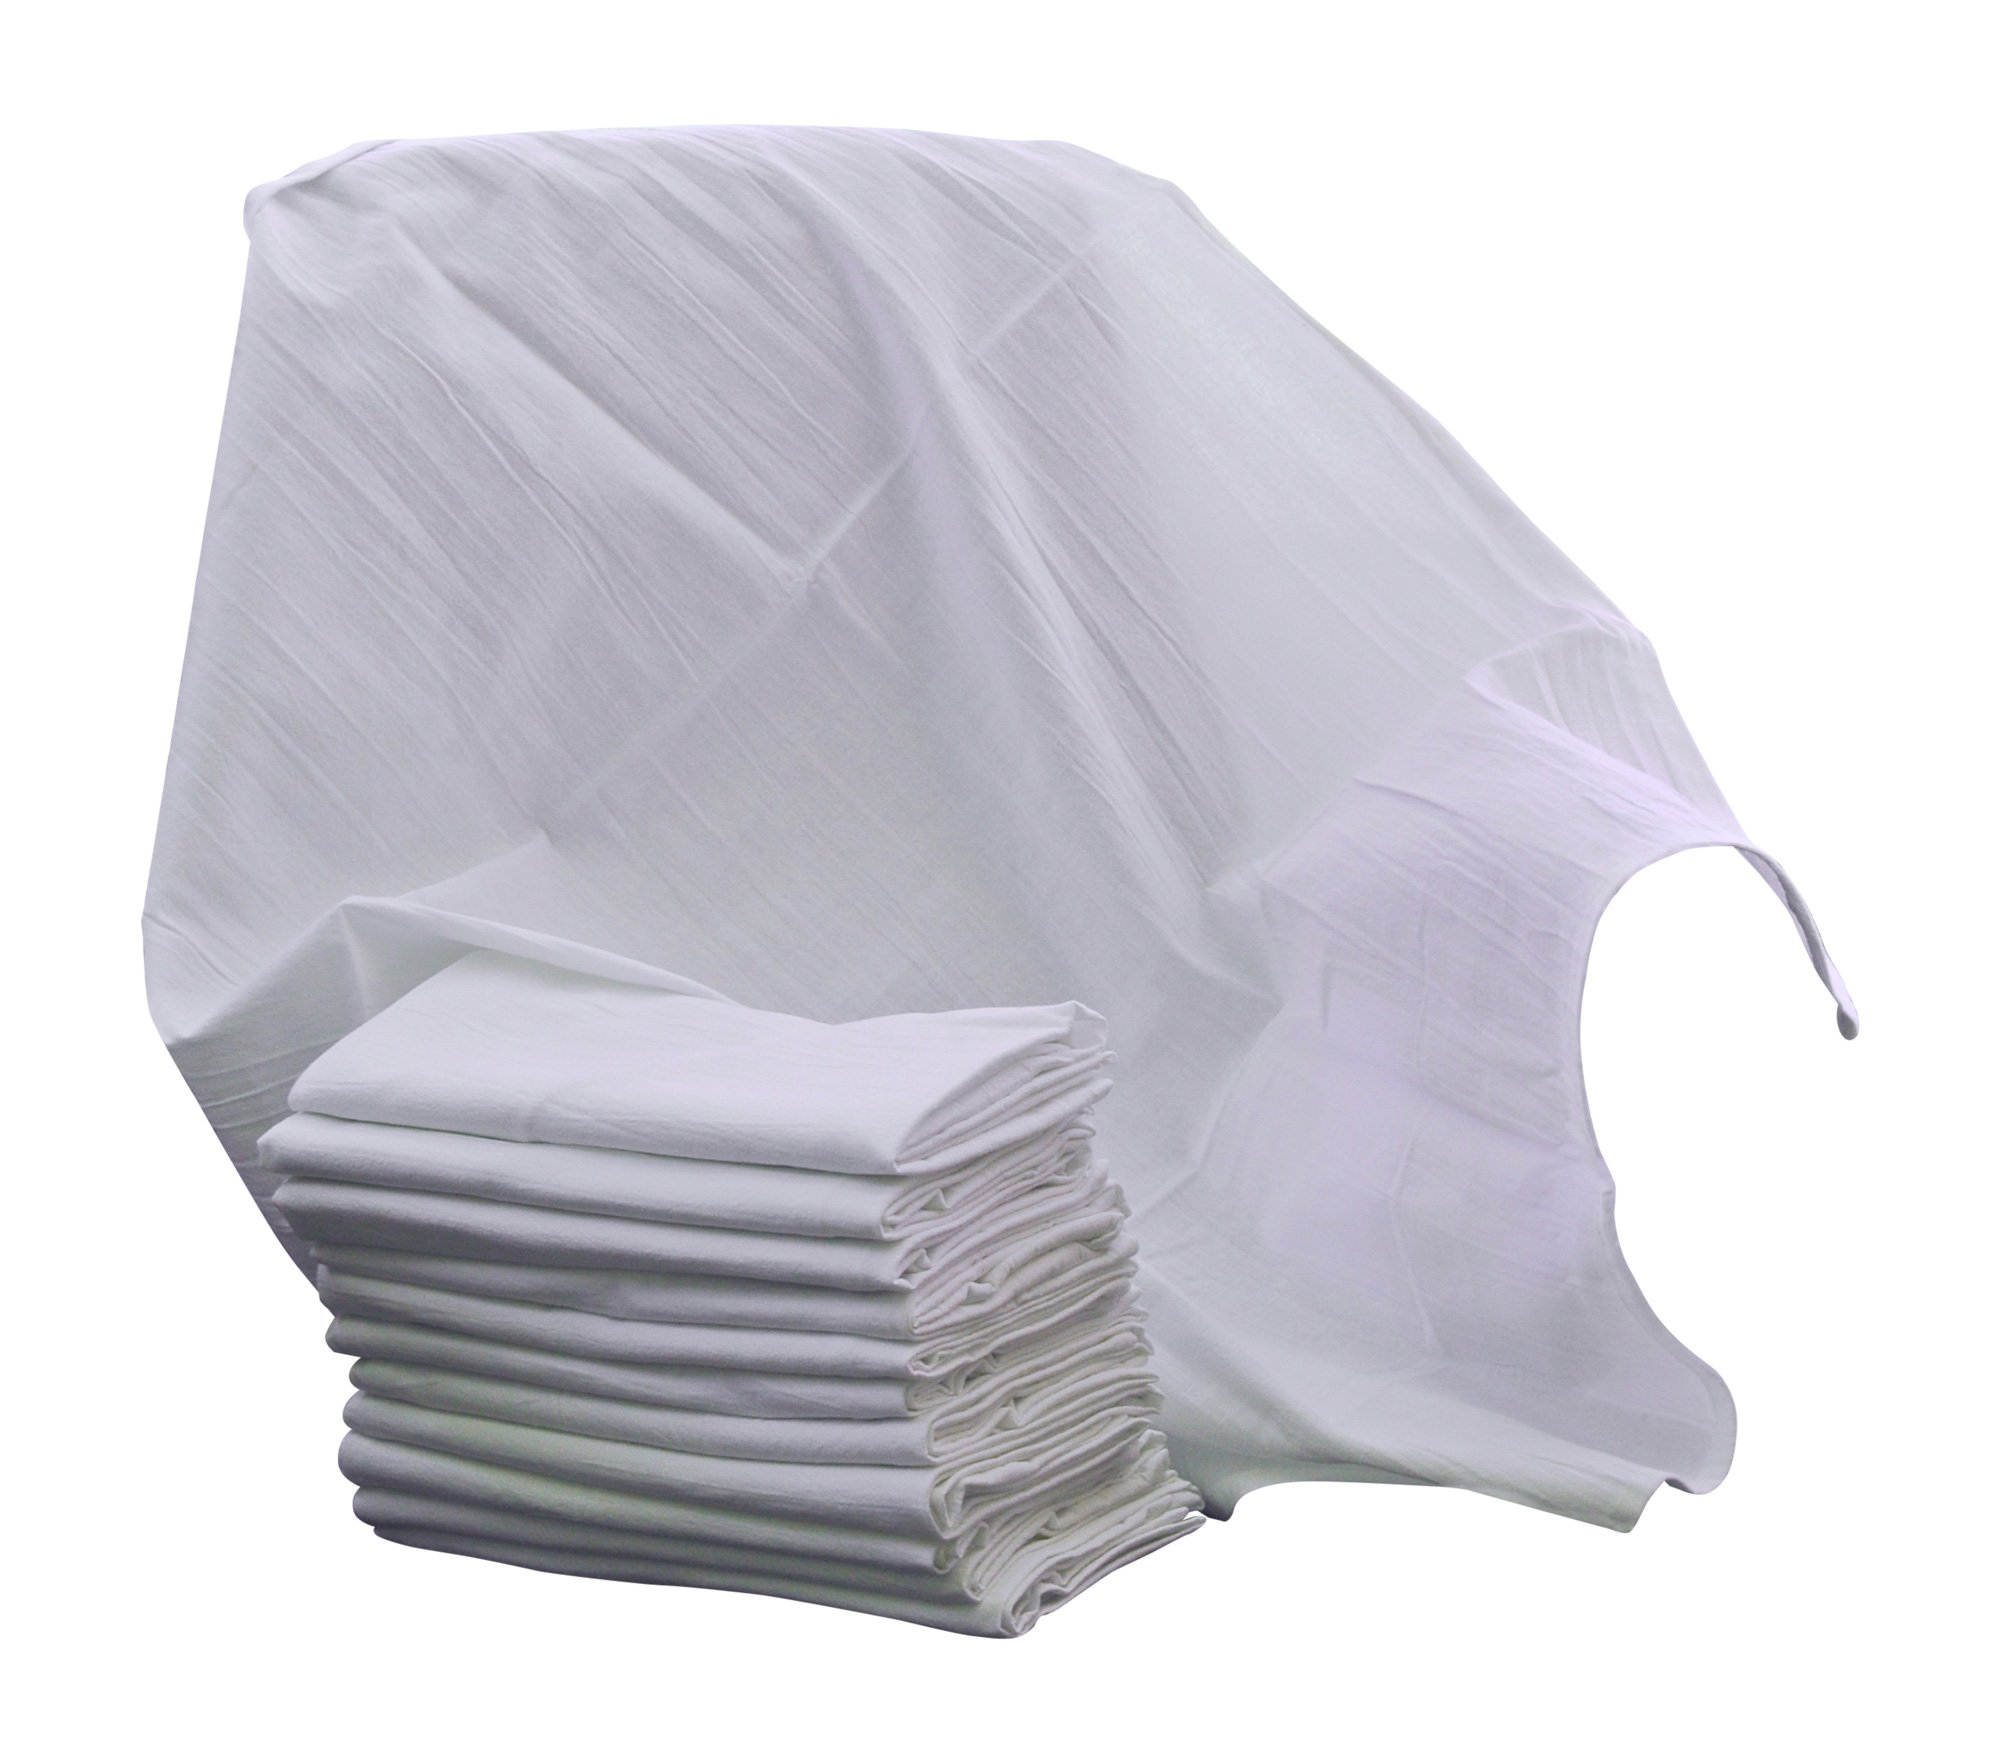 Flour Sack Kitchen Dish Towels 100% Pure Cotton Durable 28X28 Bleached Low Lint Fast Drying Commercial Grade (12)